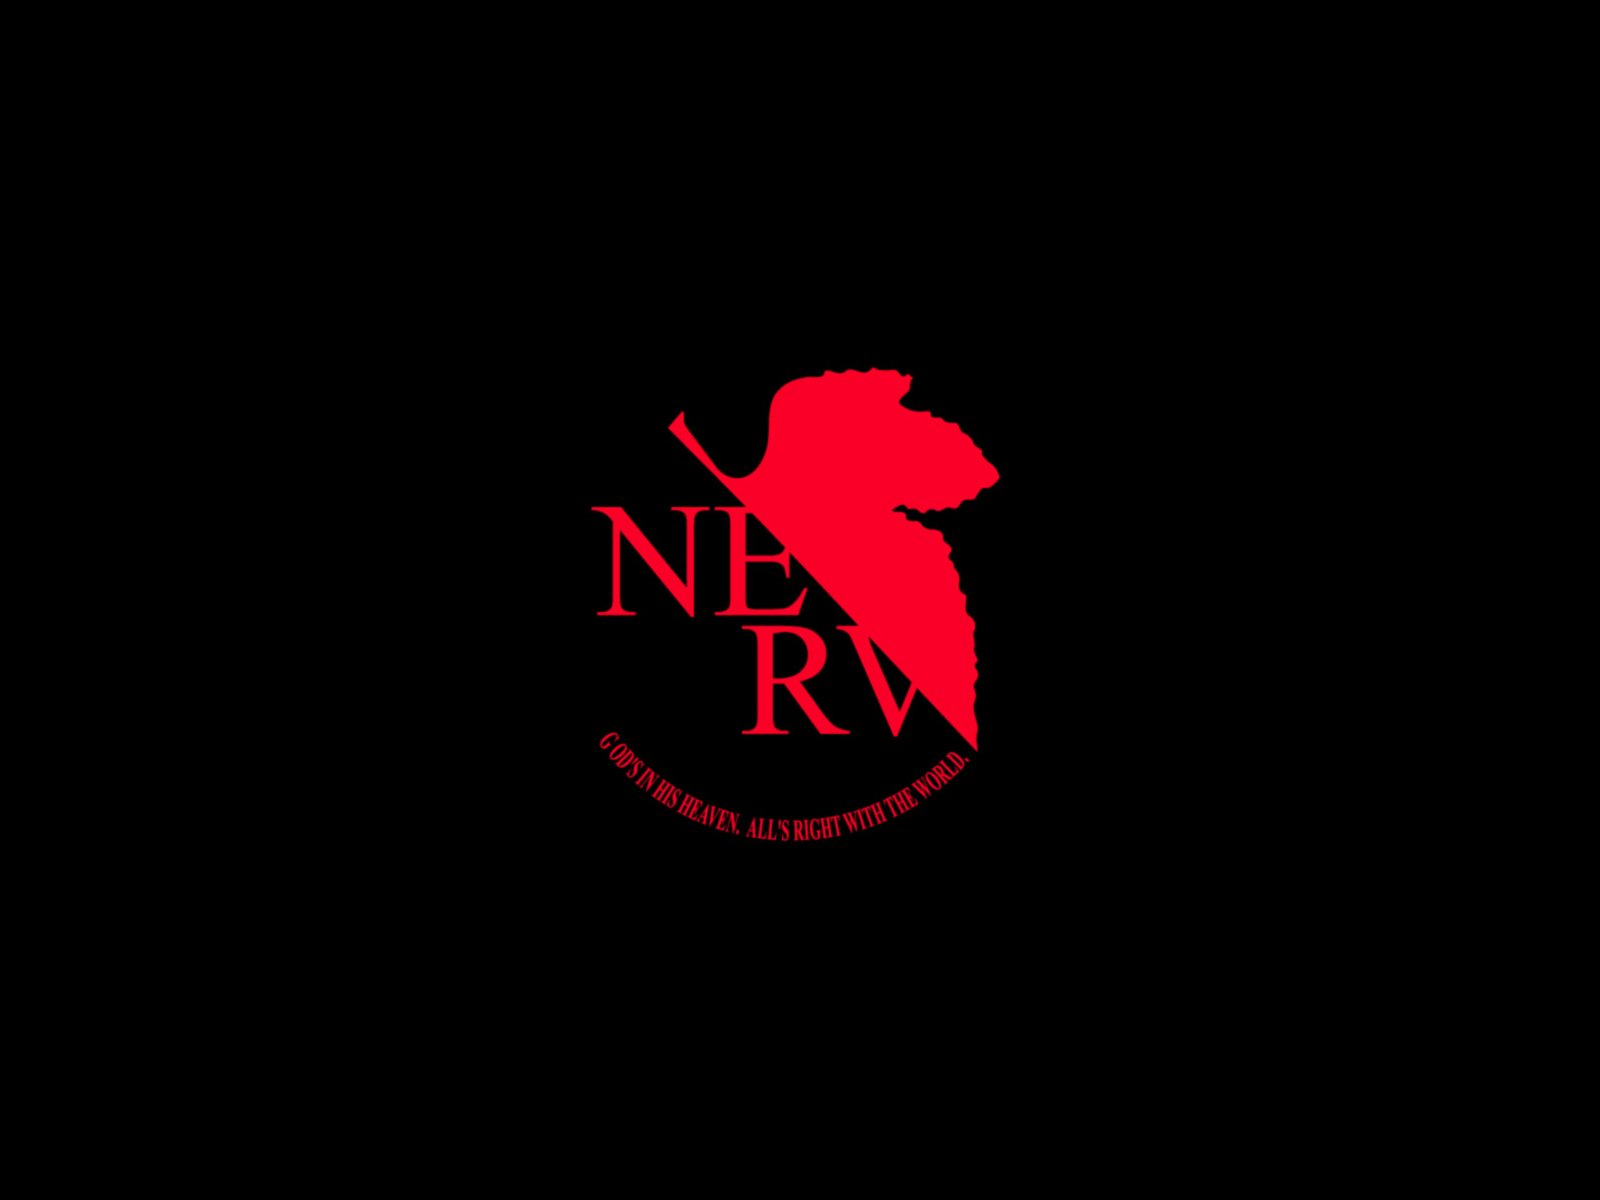 32 Nerv Evangelion Hd Wallpapers Background Images Wallpaper Abyss